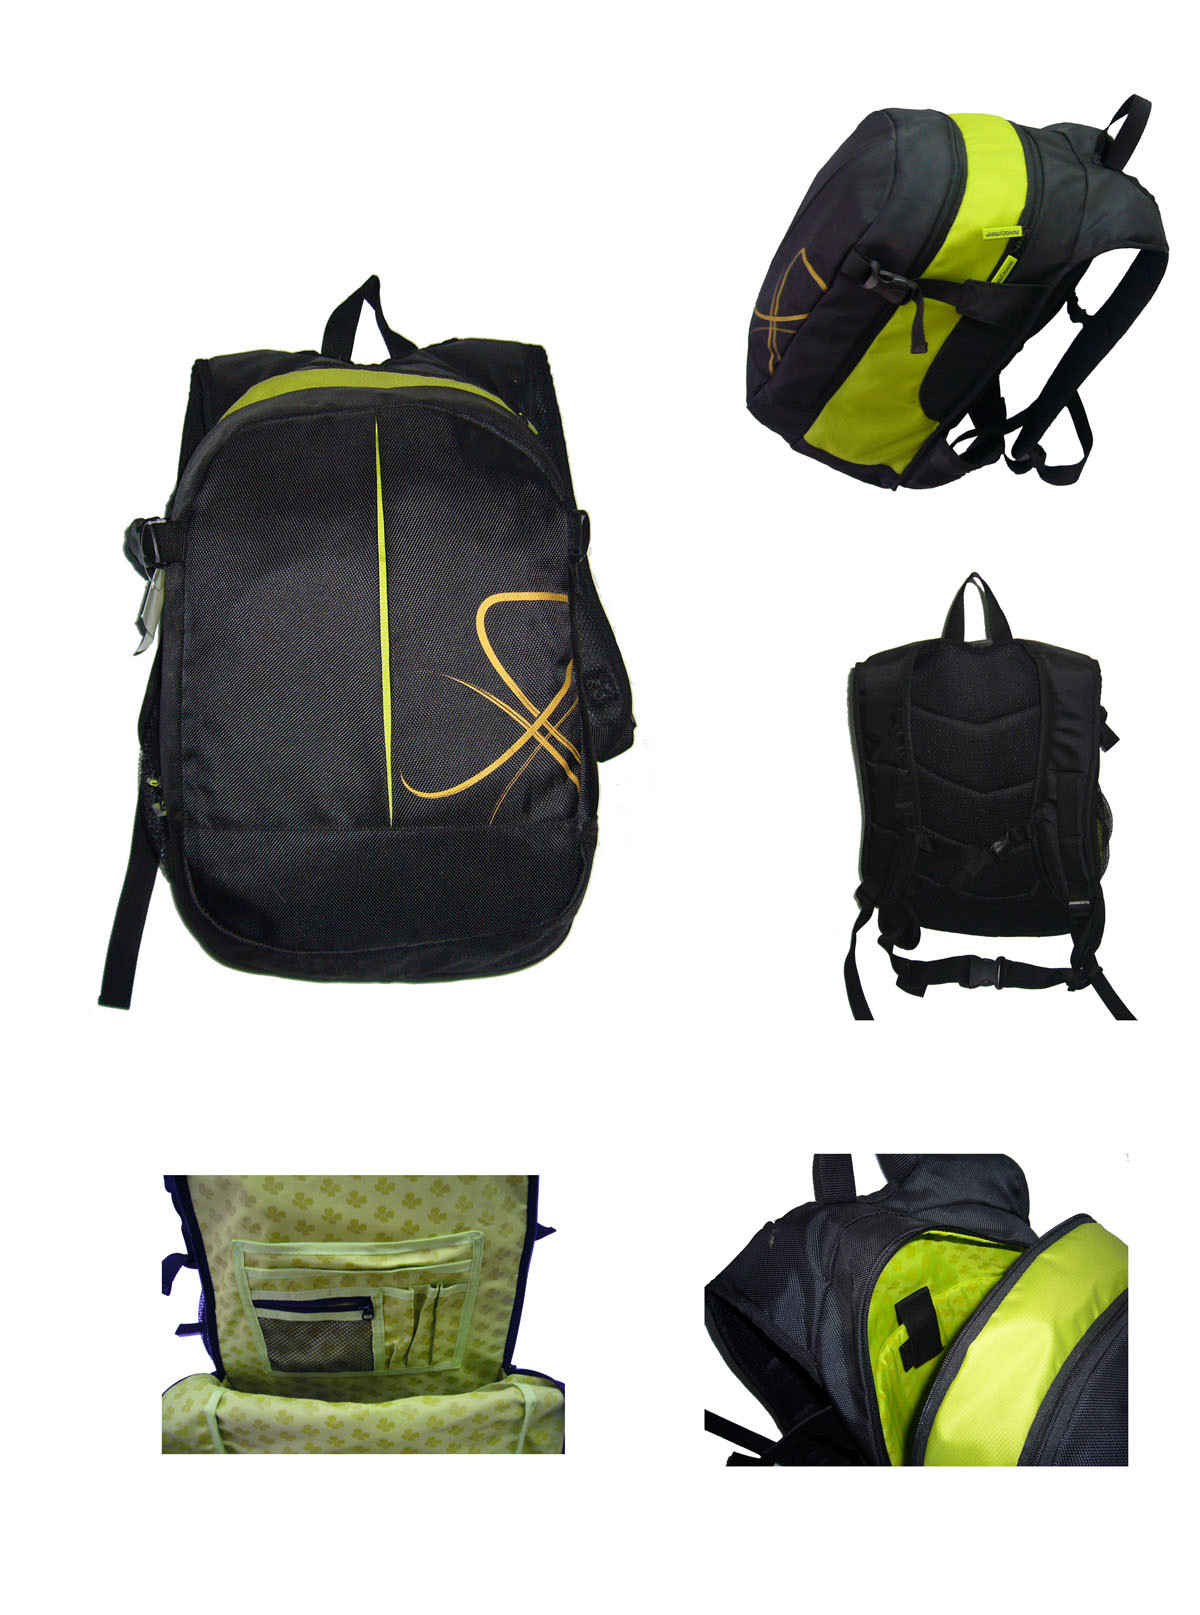 https://i1.wp.com/image.made-in-china.com/2f0j00EMptgTbqJeon/Laptop-Pack-School-Bag-SW-0196-.jpg